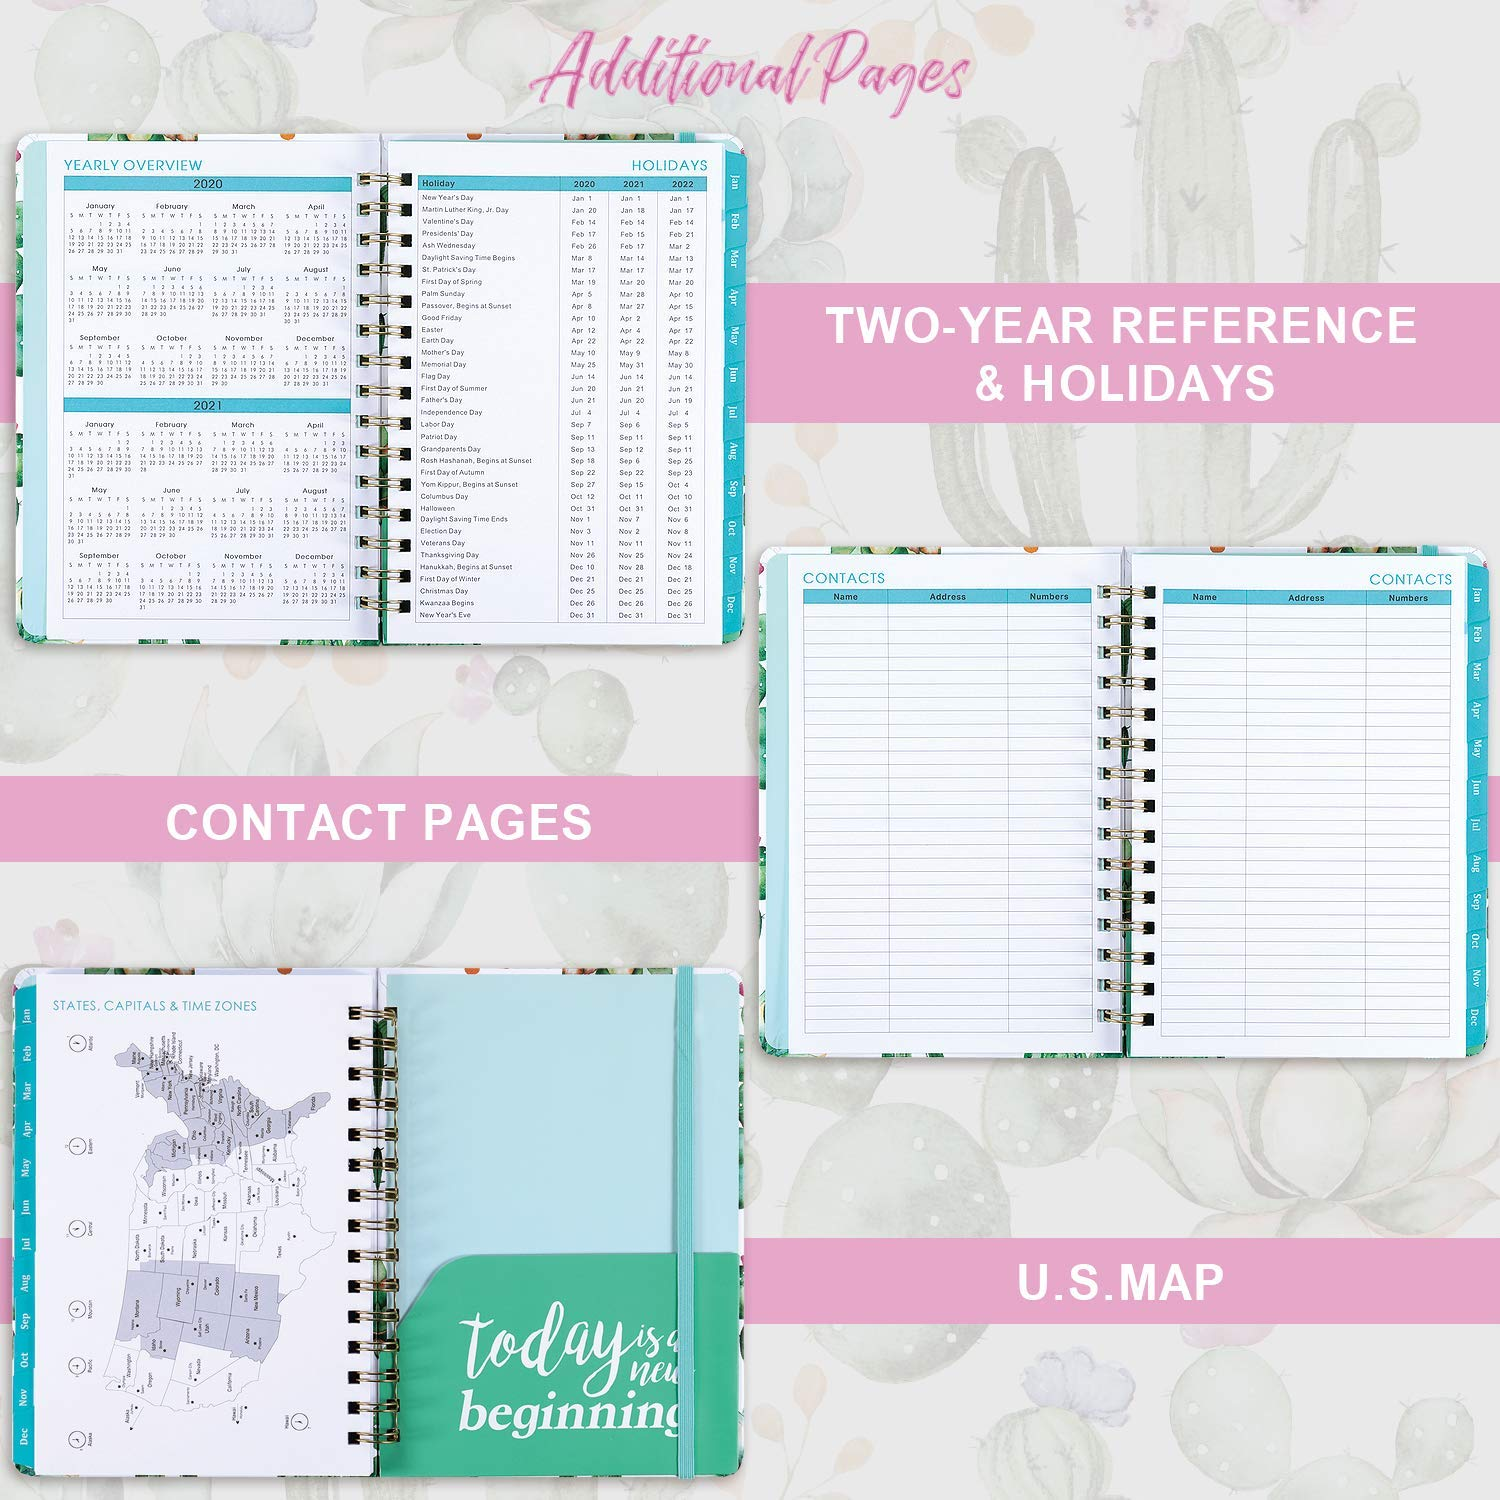 Monthly and Year Planner Inspirational Quotes Thick Paper Wire Binding Achieve Your Goals /& Improve Productivity Weekly Flexible Hardcover Planner 2020 8.5 x 6.4 Inner Pocket